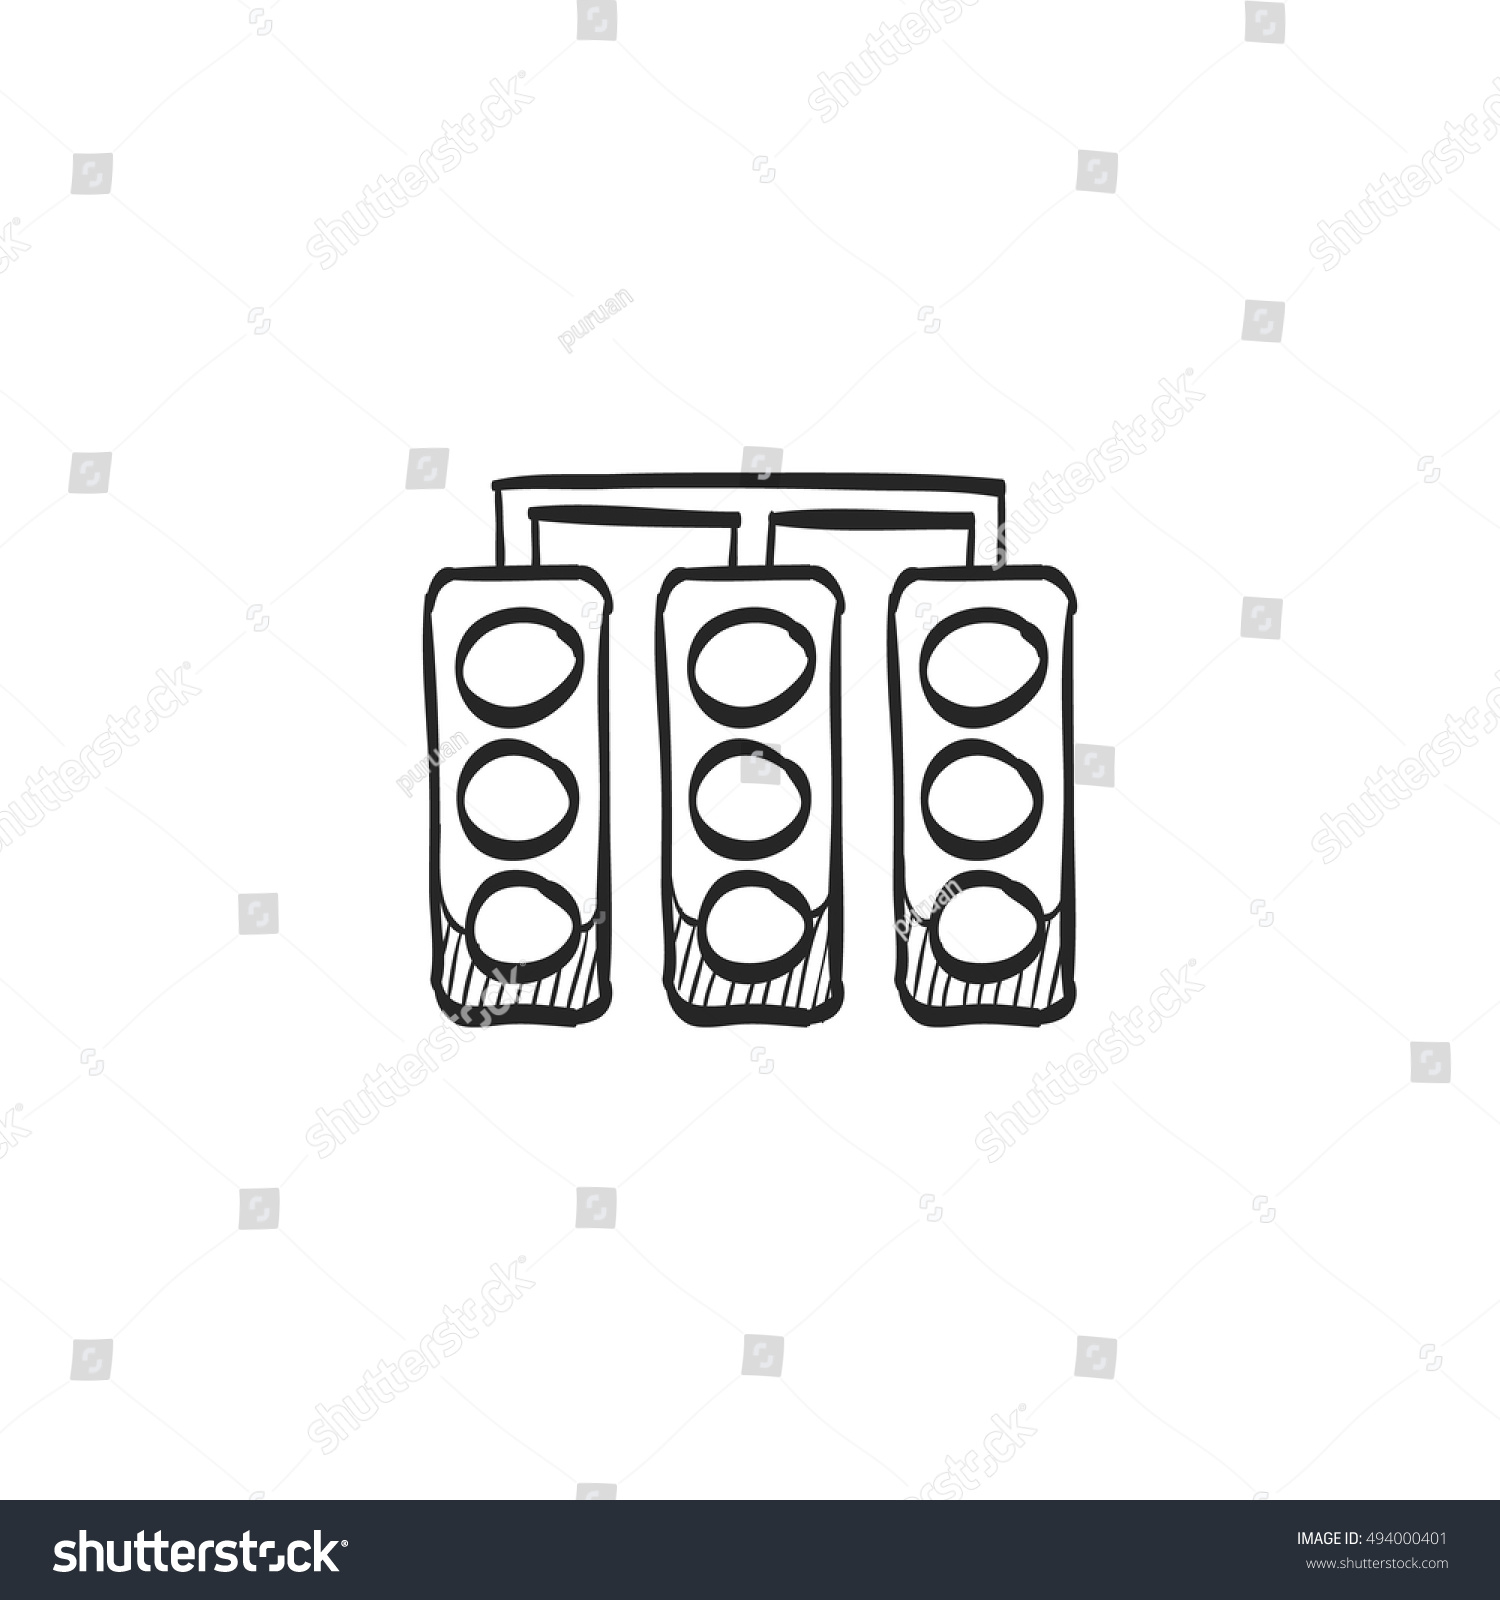 hight resolution of red light sign icon in doodle sketch lines traffic road signal stoplight street